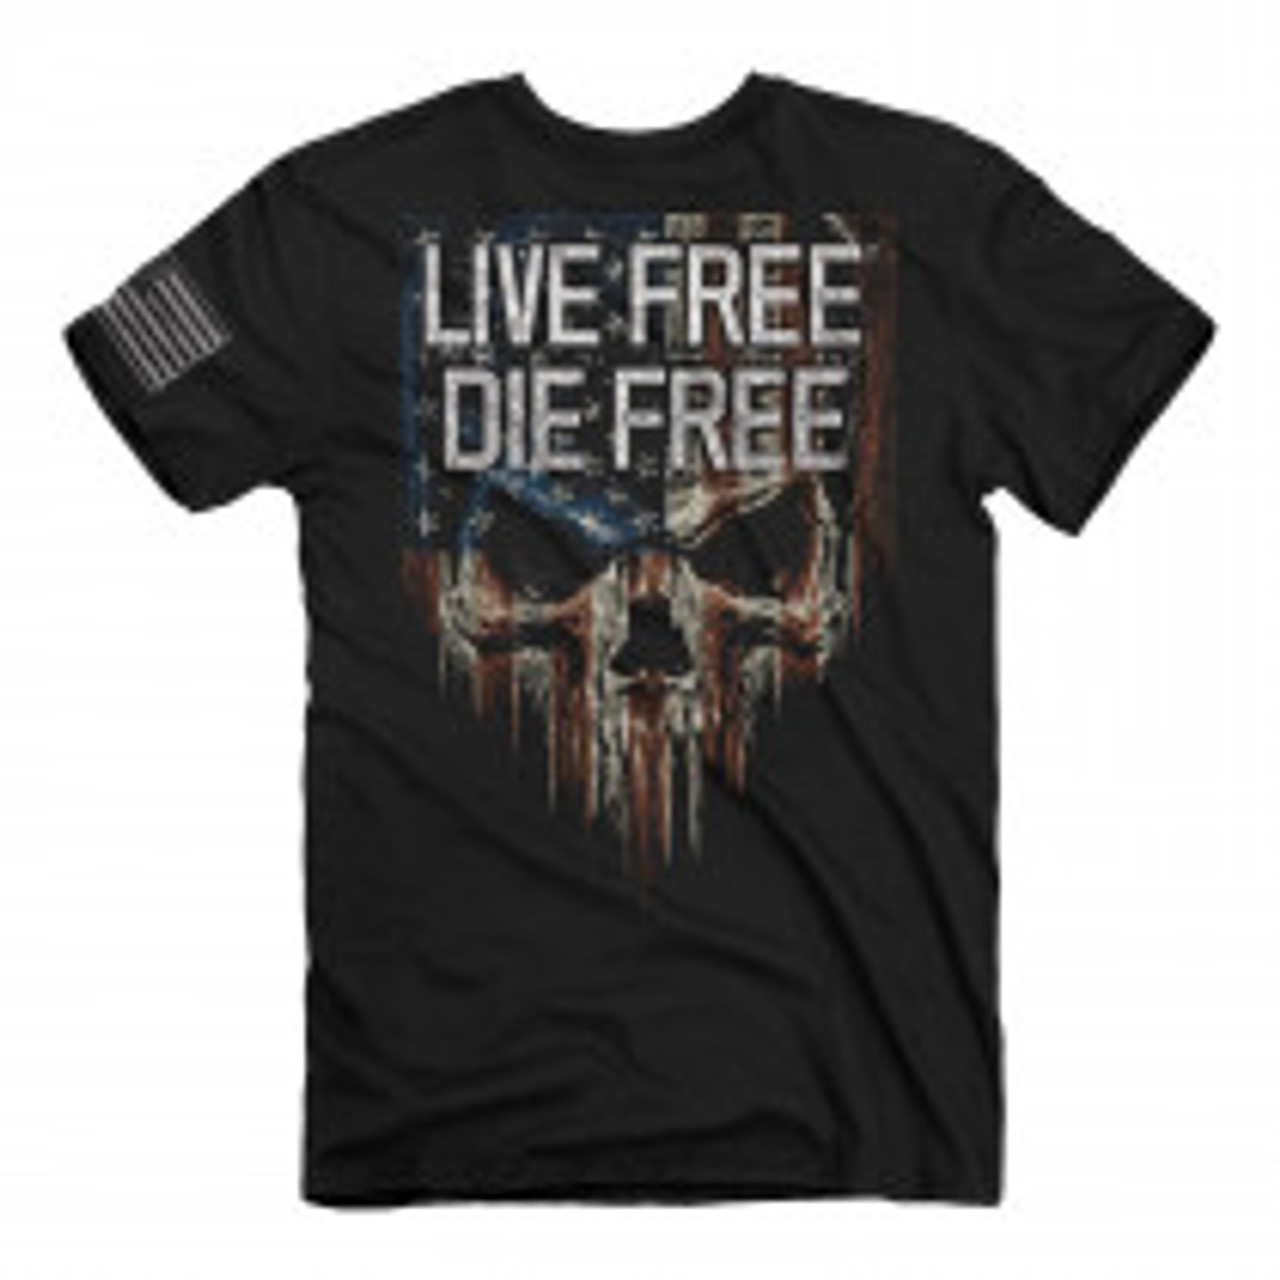 **(OFFICIAL-LIVE-FREE/DIE-FREE & PATRIOTIC-FLAG-DRAPED-SKULL,NICE-CUSTOM-3D-GRAPHIC-PRINTED-DOUBLE-SIDED-PREMIUM-TEE'S)**